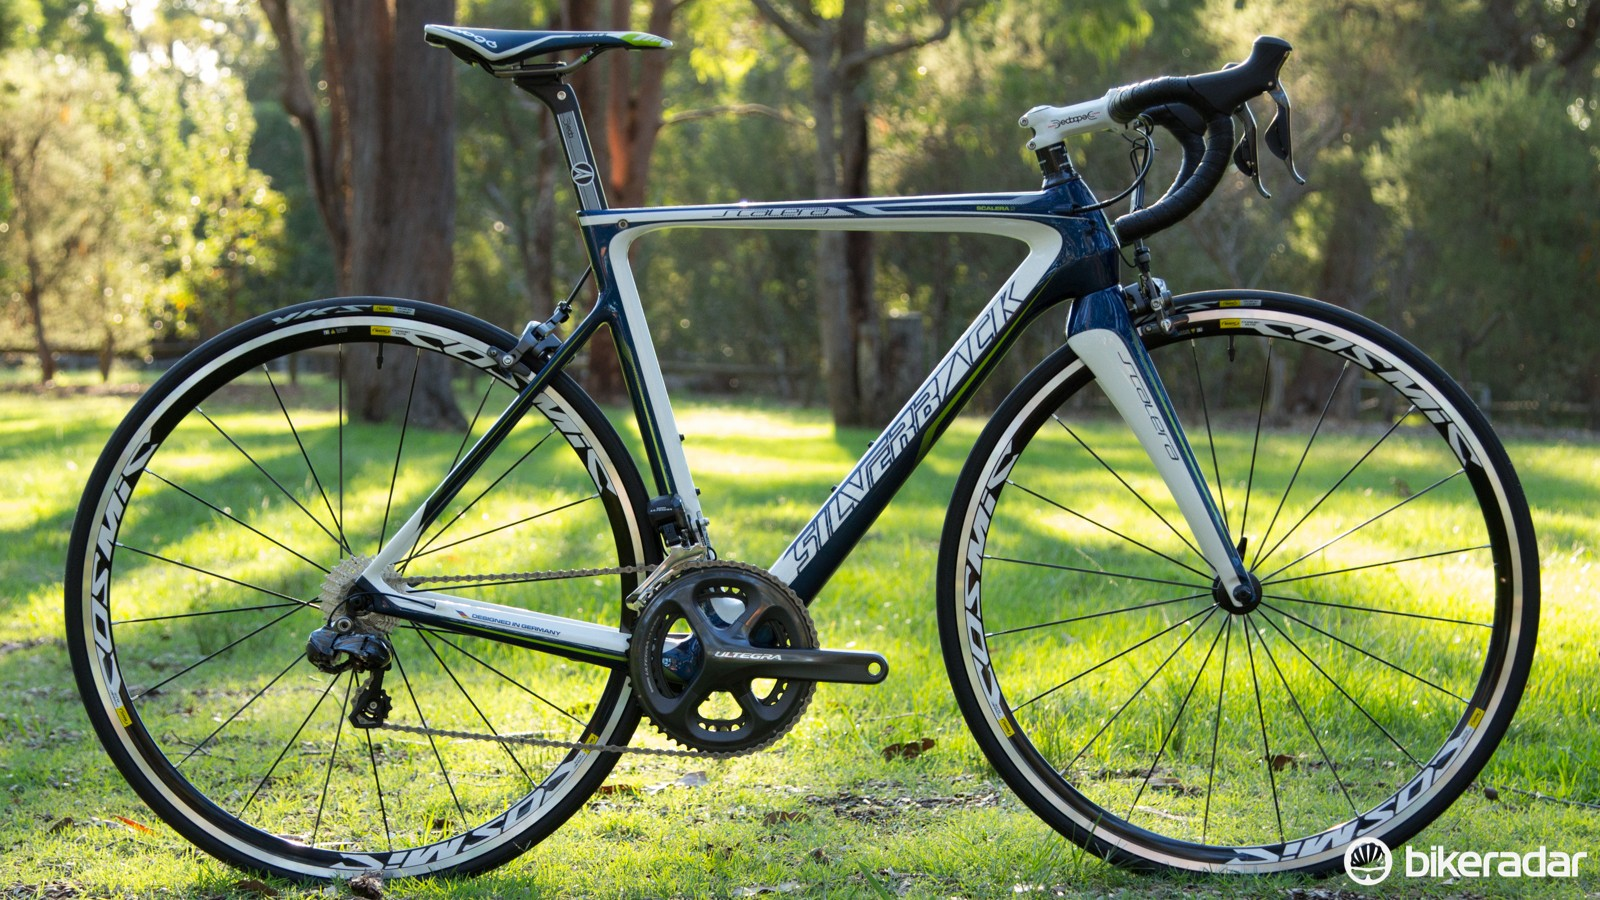 Silverback Scalera 2 - ready for some hard, fast riding